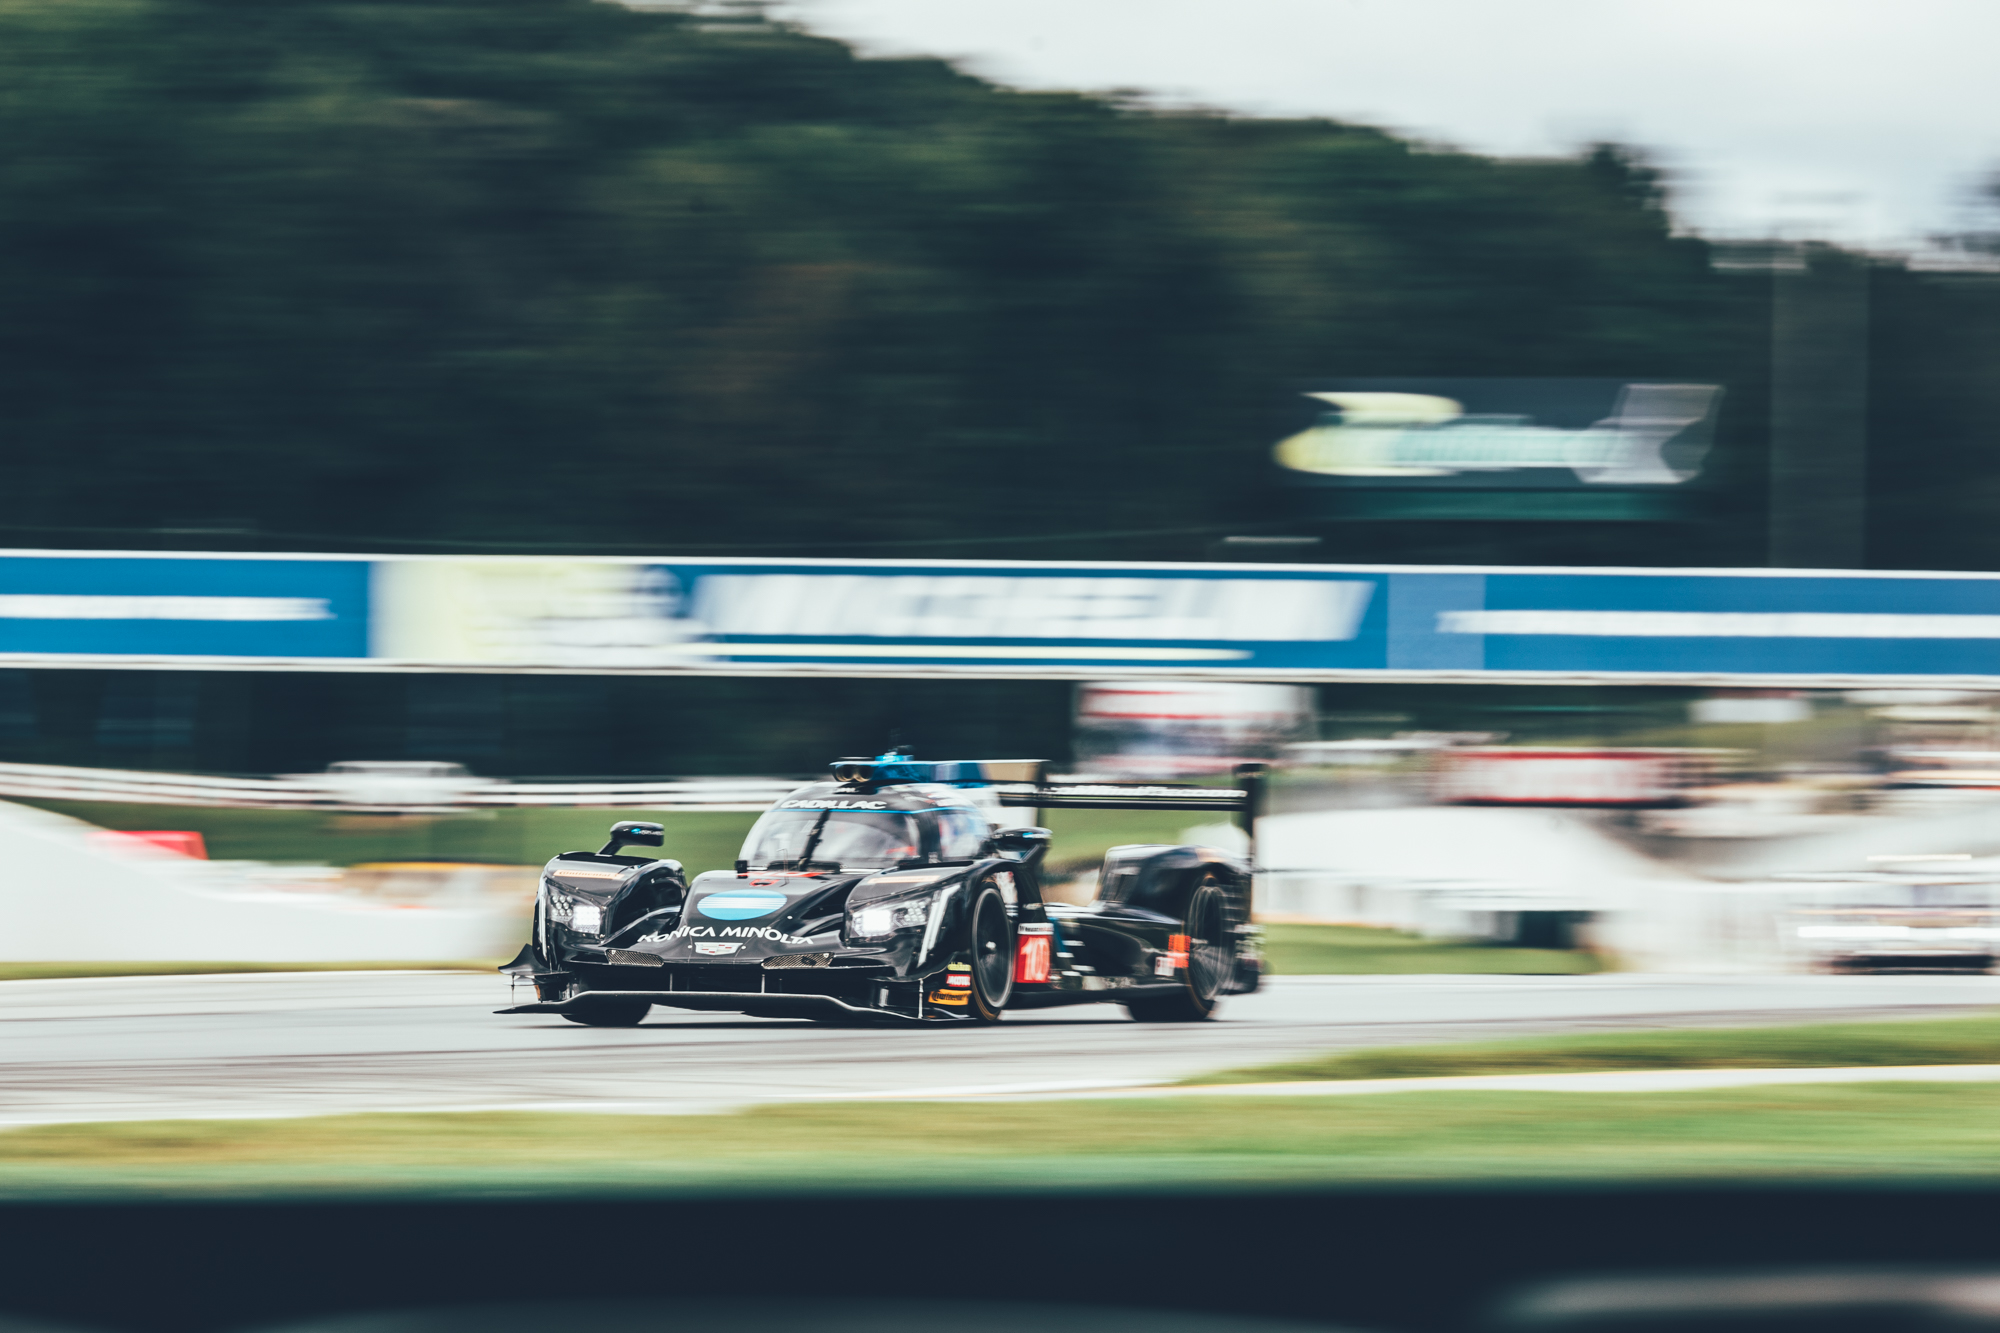 CADILLAC DPI V.R.: HOW TO BUILD A WINNING RACECAR